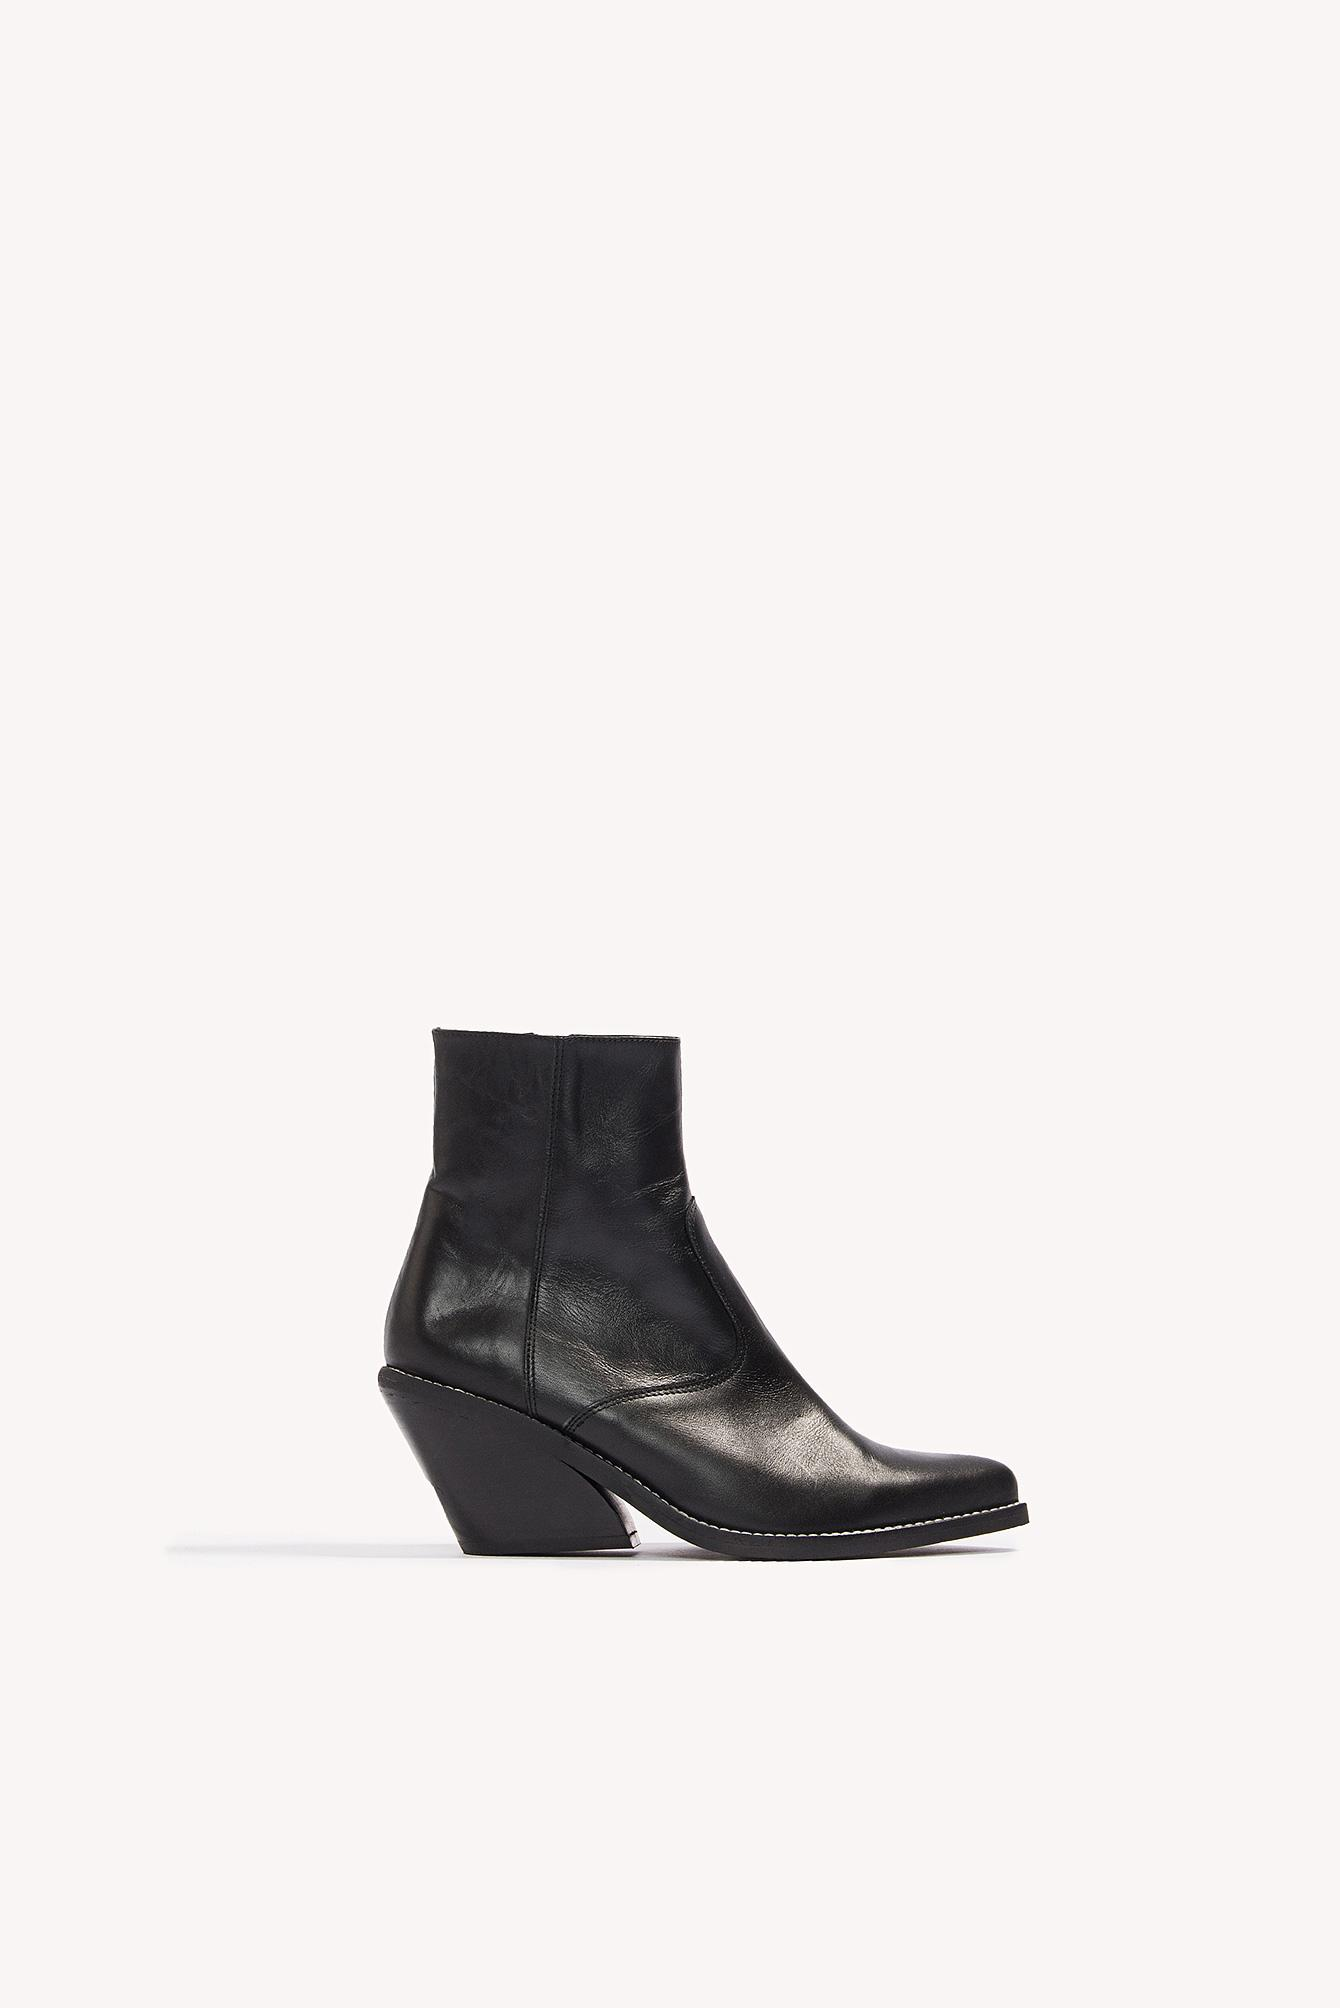 a202ff6e744 Henry Kole Evie Boots in Black - Lyst